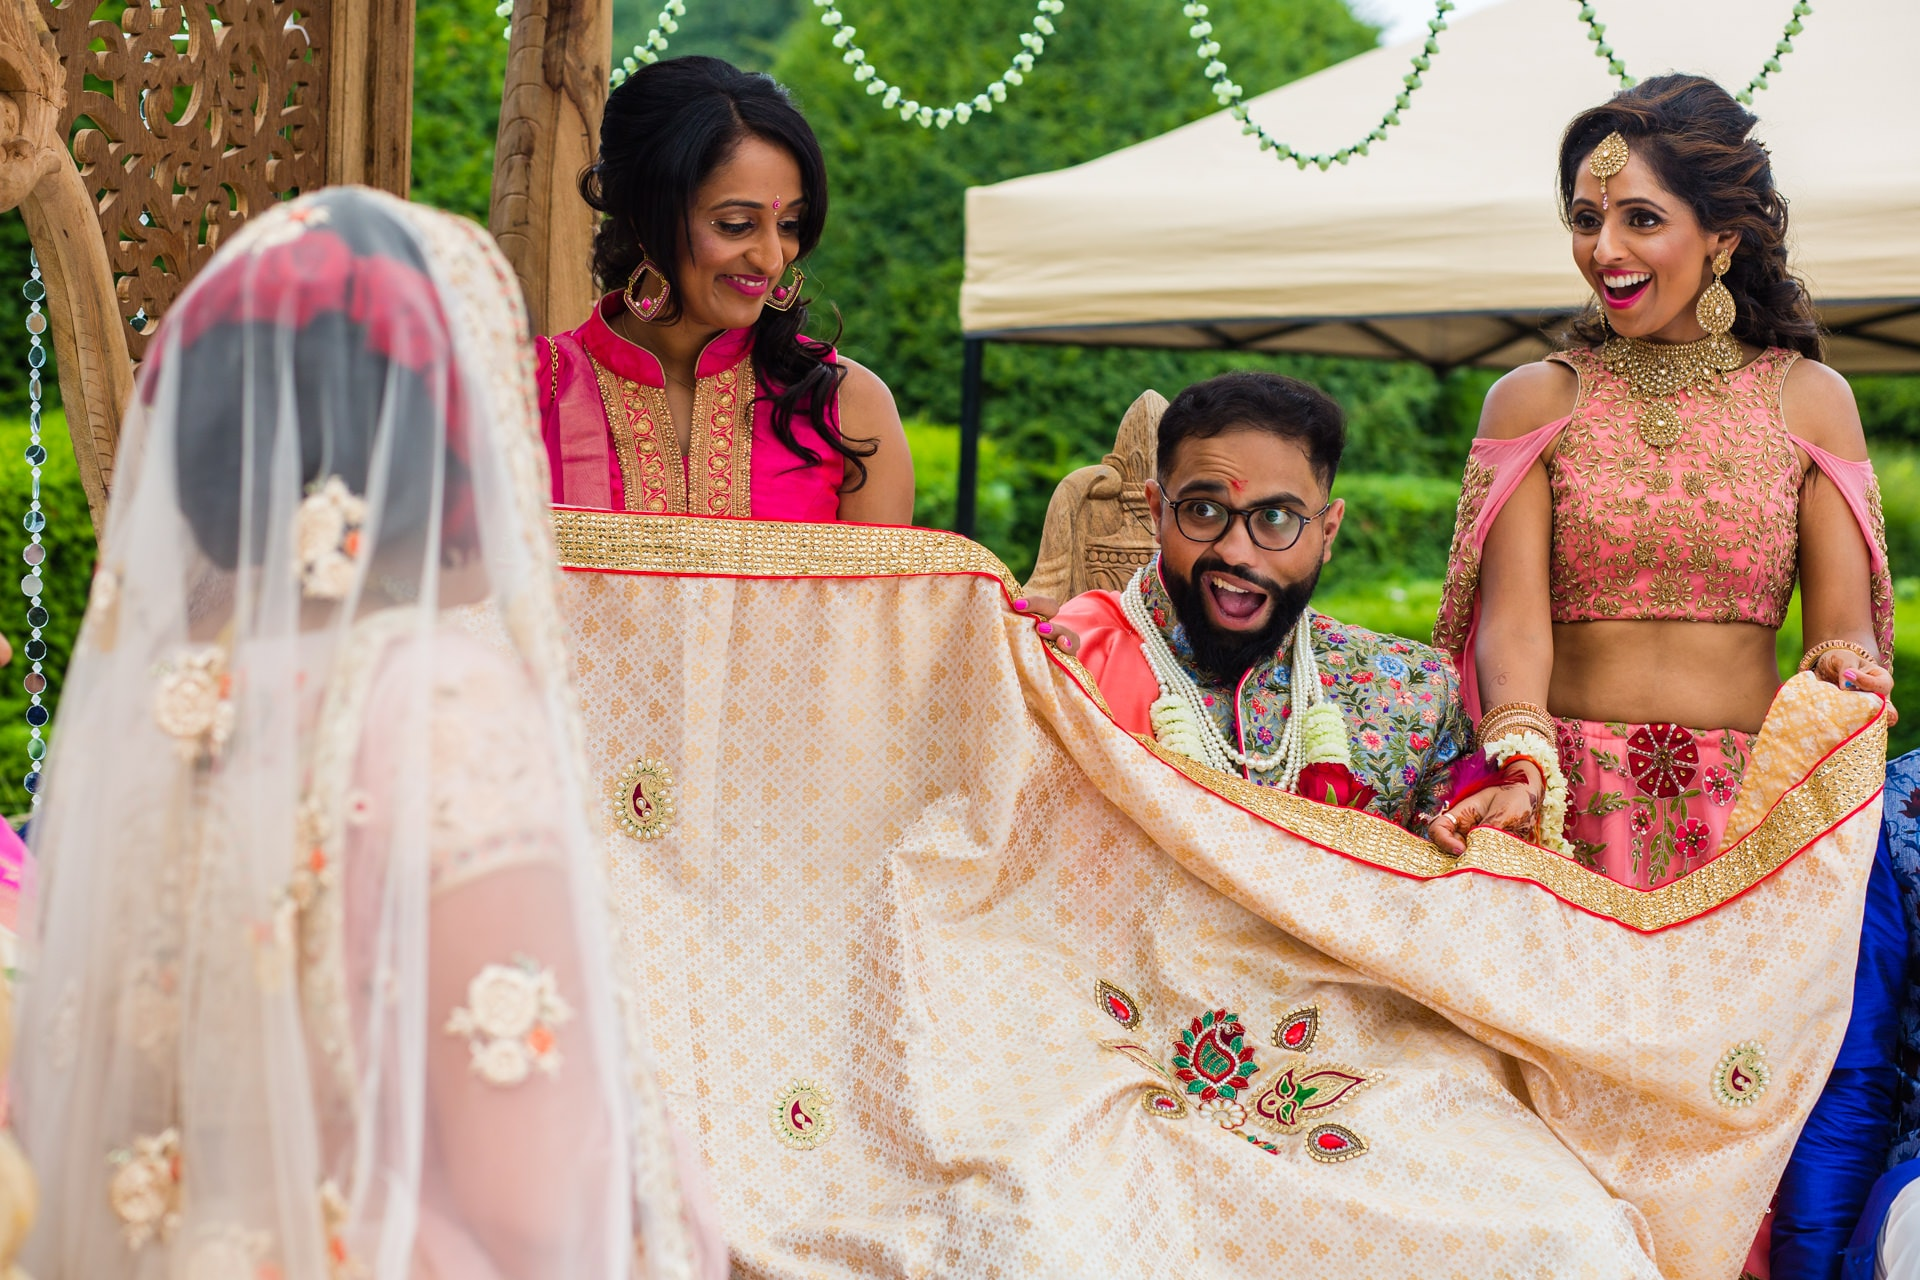 Groom's reaction to seeing bride at wedding